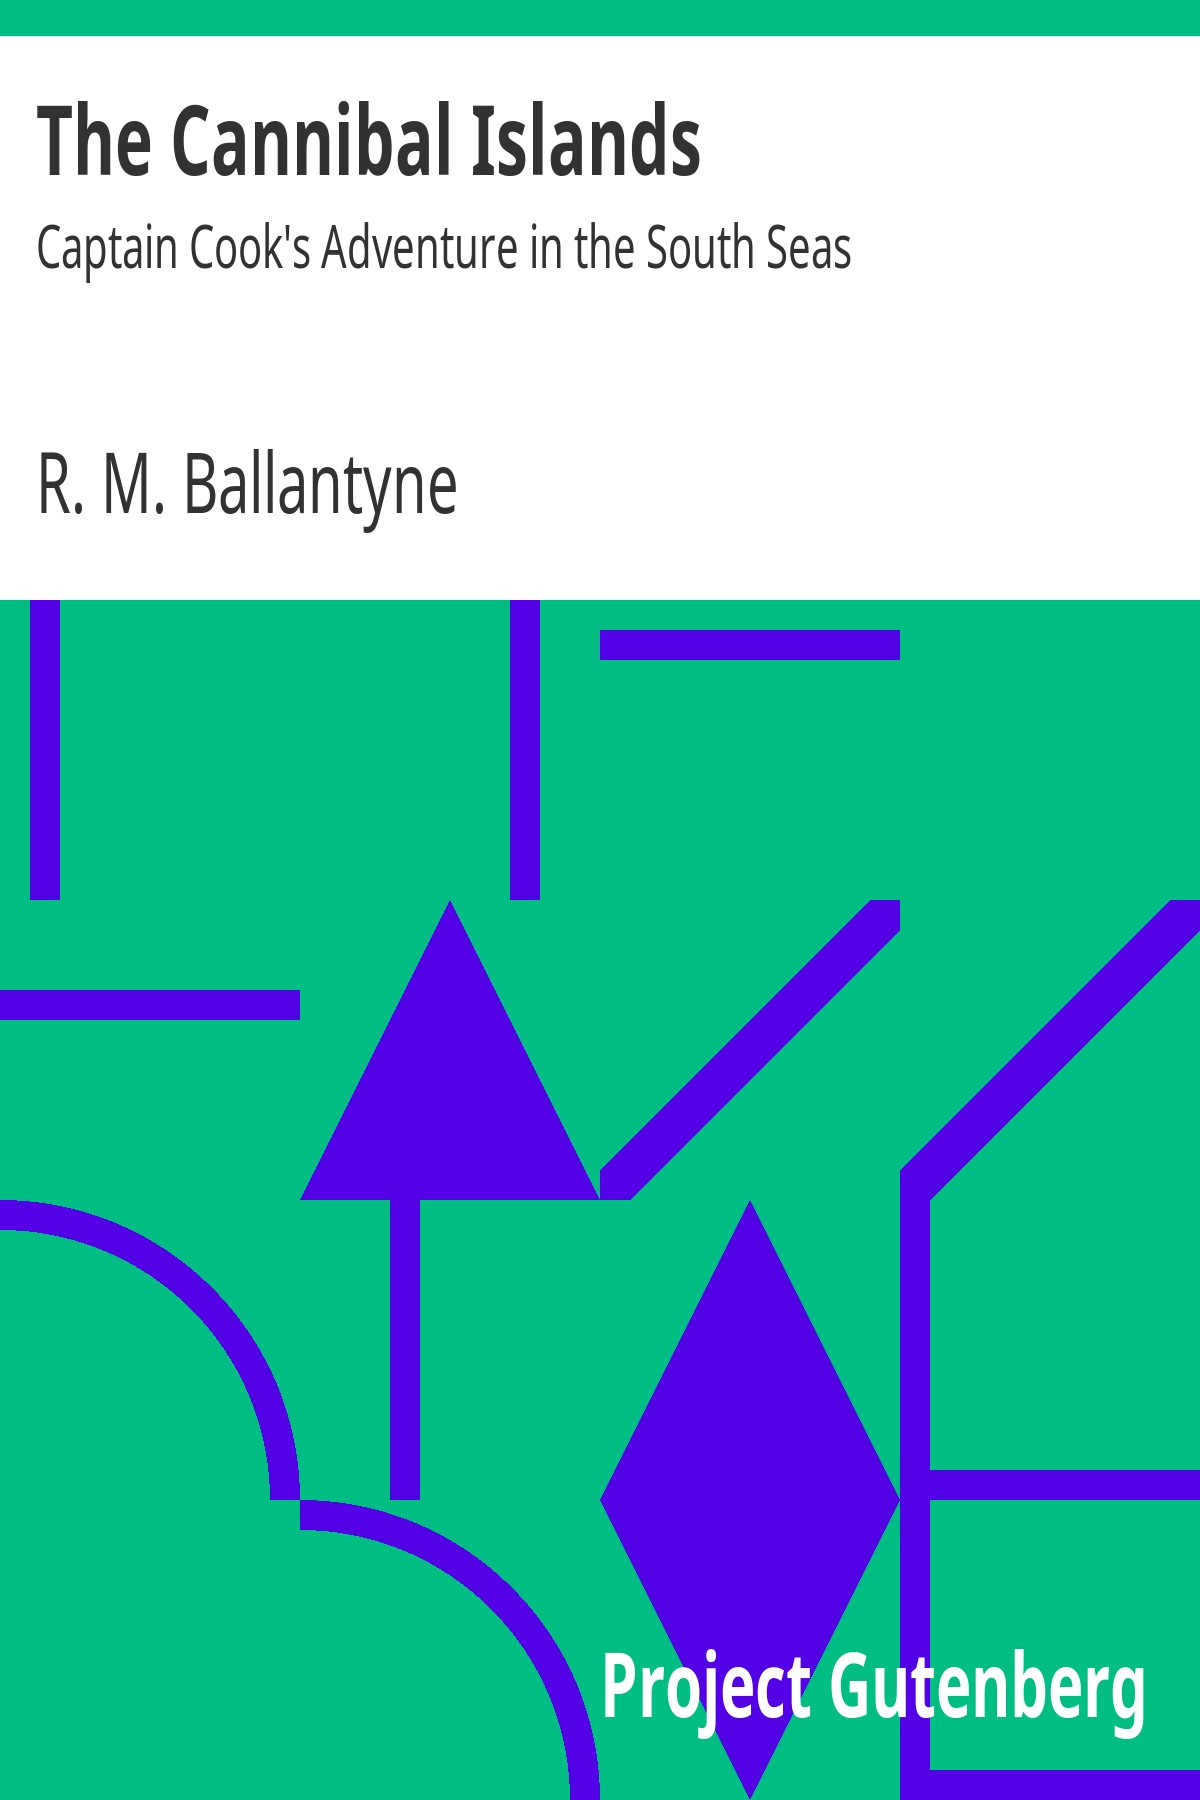 R. M. Ballantyne The Cannibal Islands: Captain Cook's Adventure in the South Seas